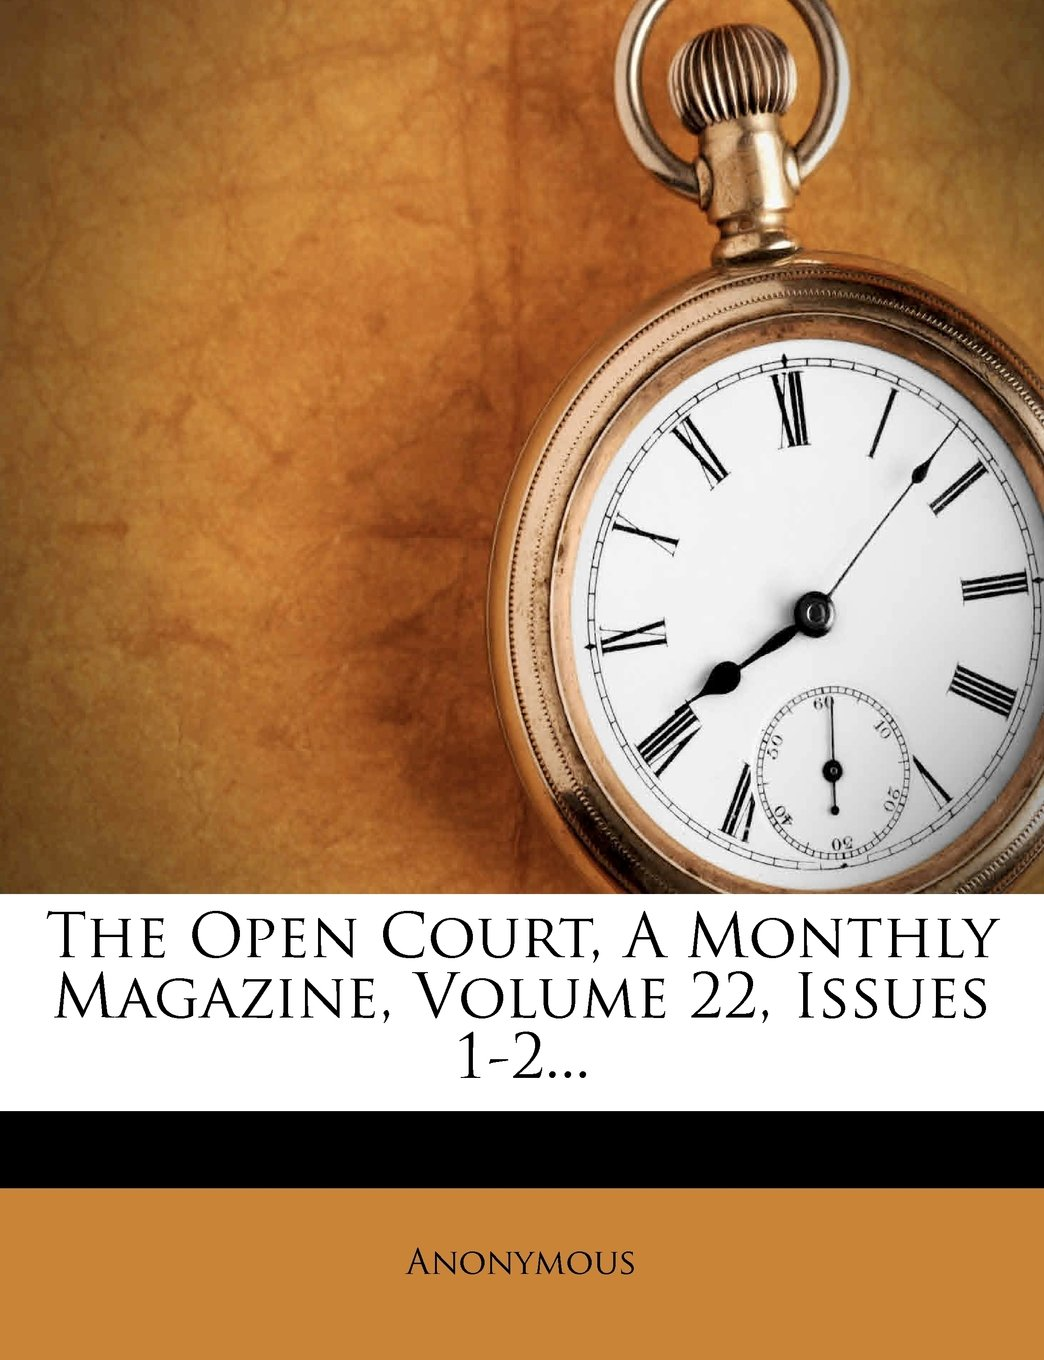 Download The Open Court, A Monthly Magazine, Volume 22, Issues 1-2... PDF